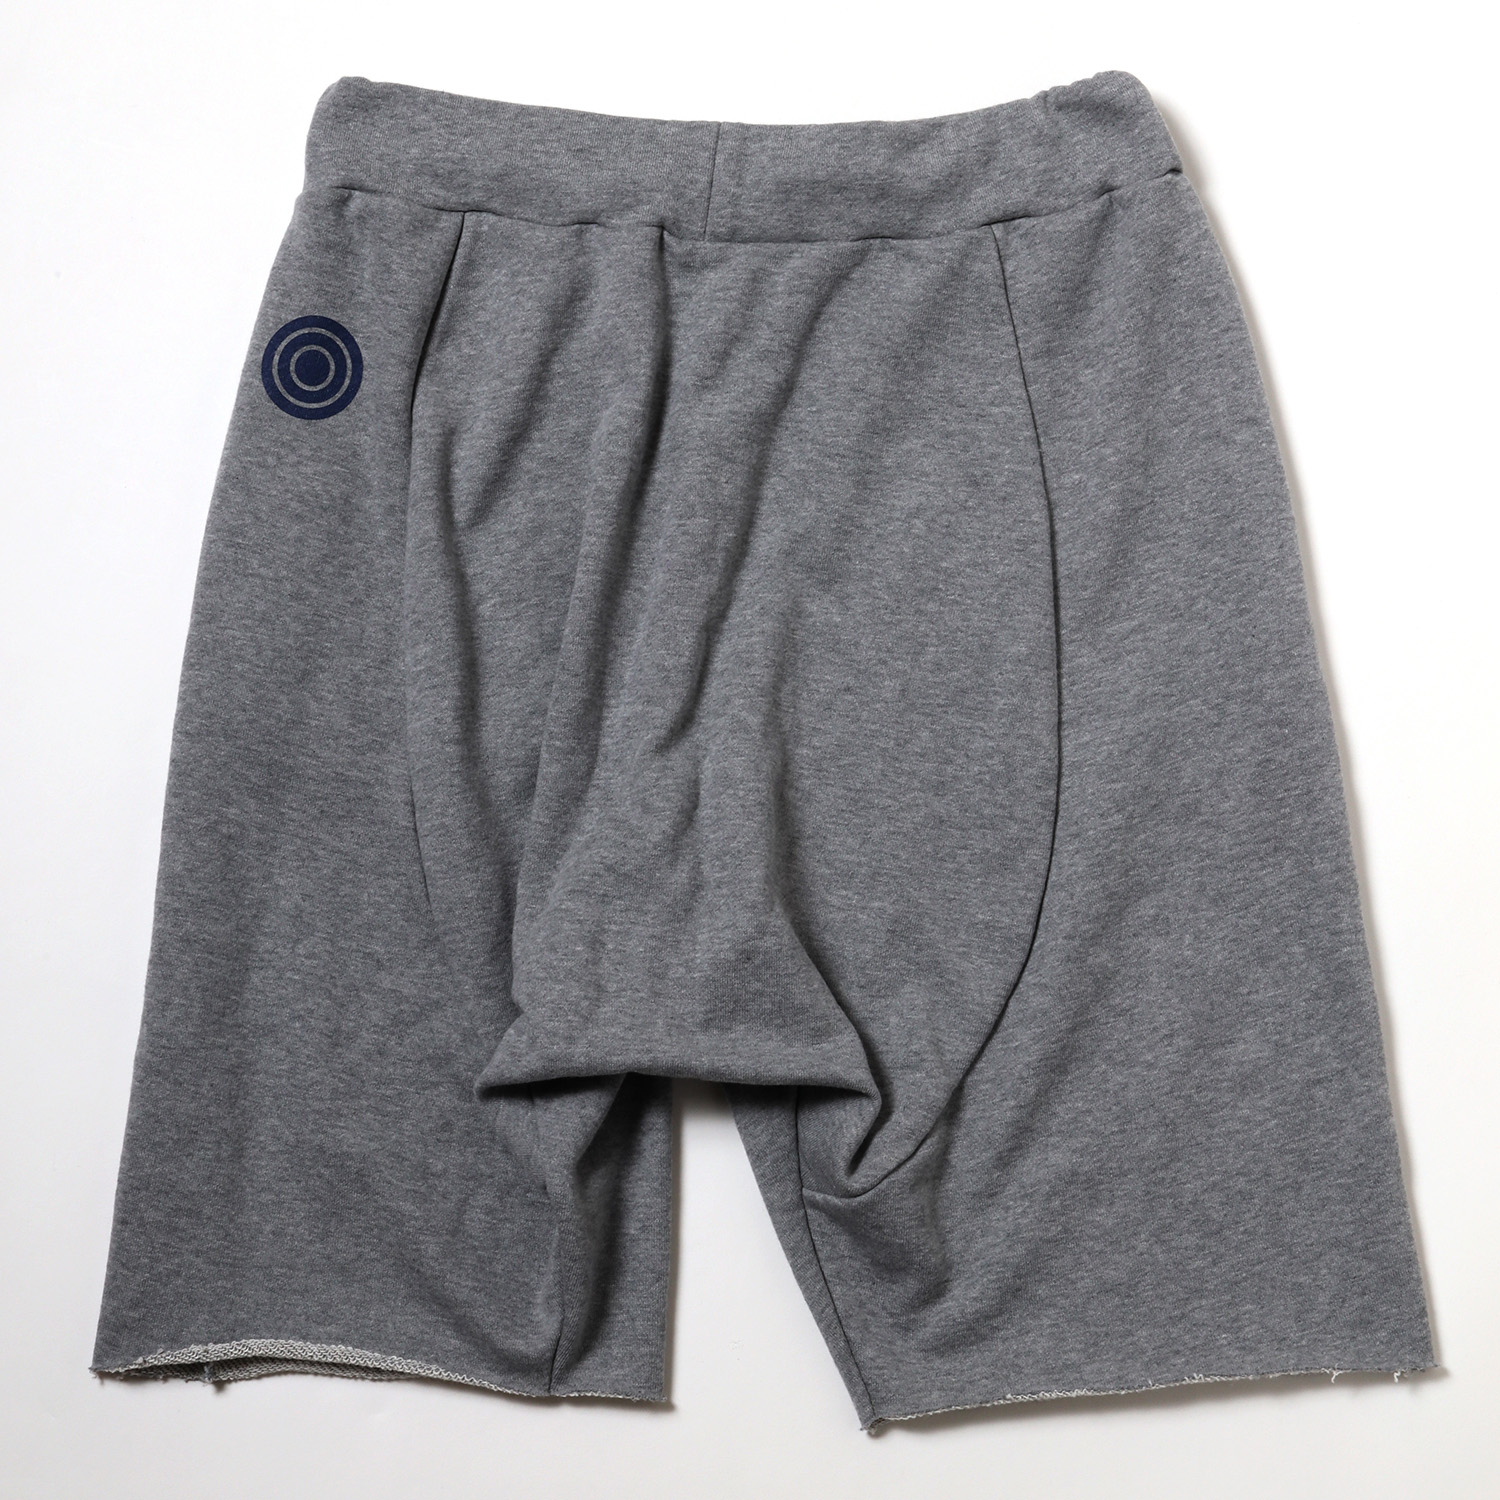 ADAMS Saruel Sweat Short Pants (GRAY)